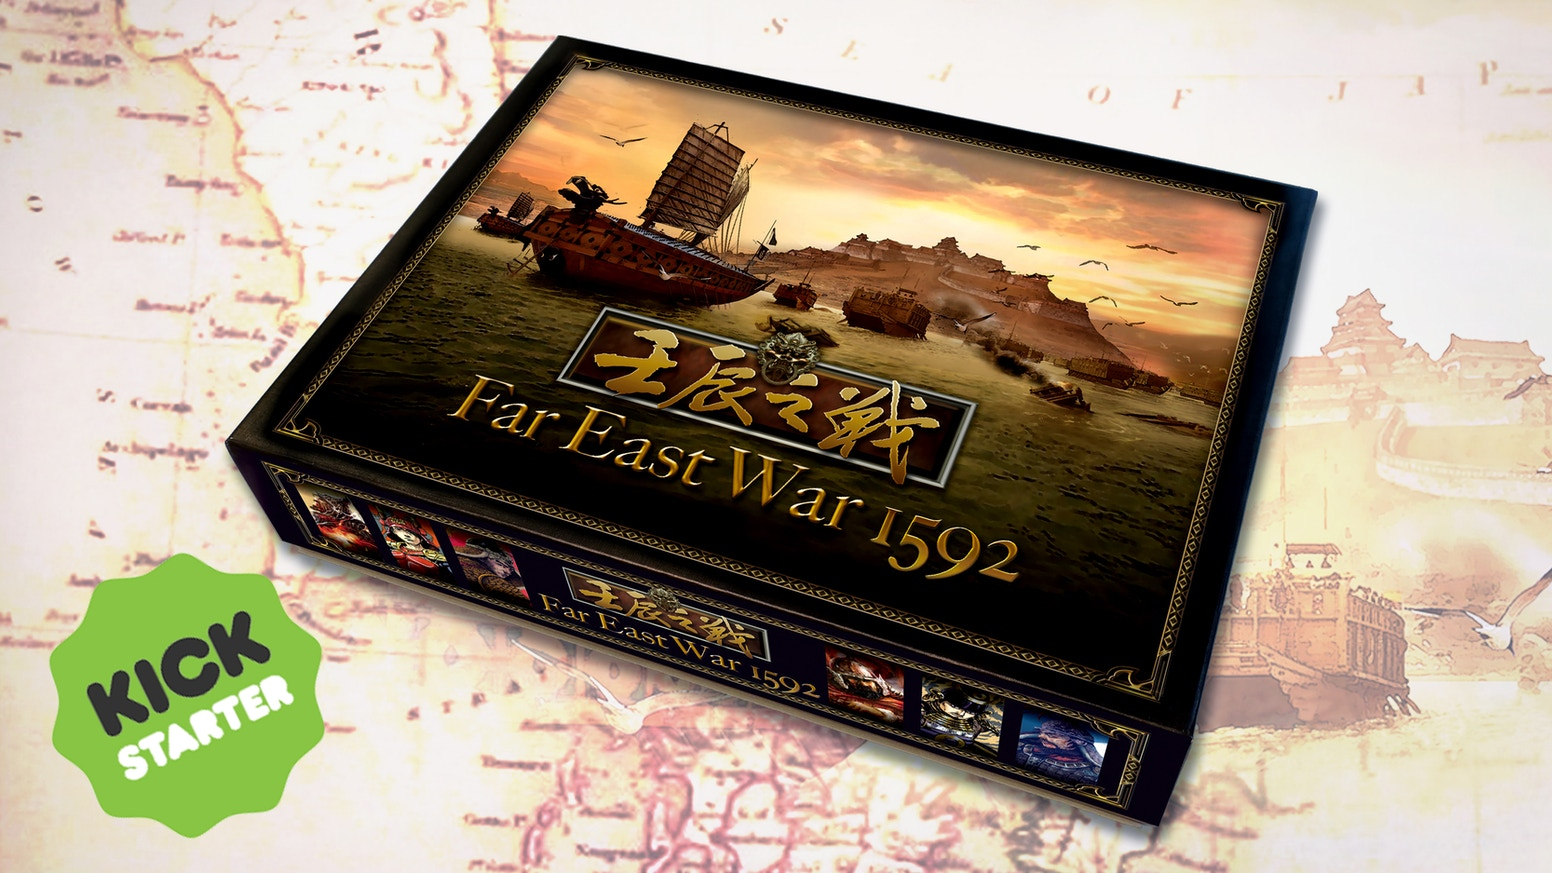 Far East War 1592 is a strategic wargame with card-deployed legions and dice-driven combat for 2 or 4 players.